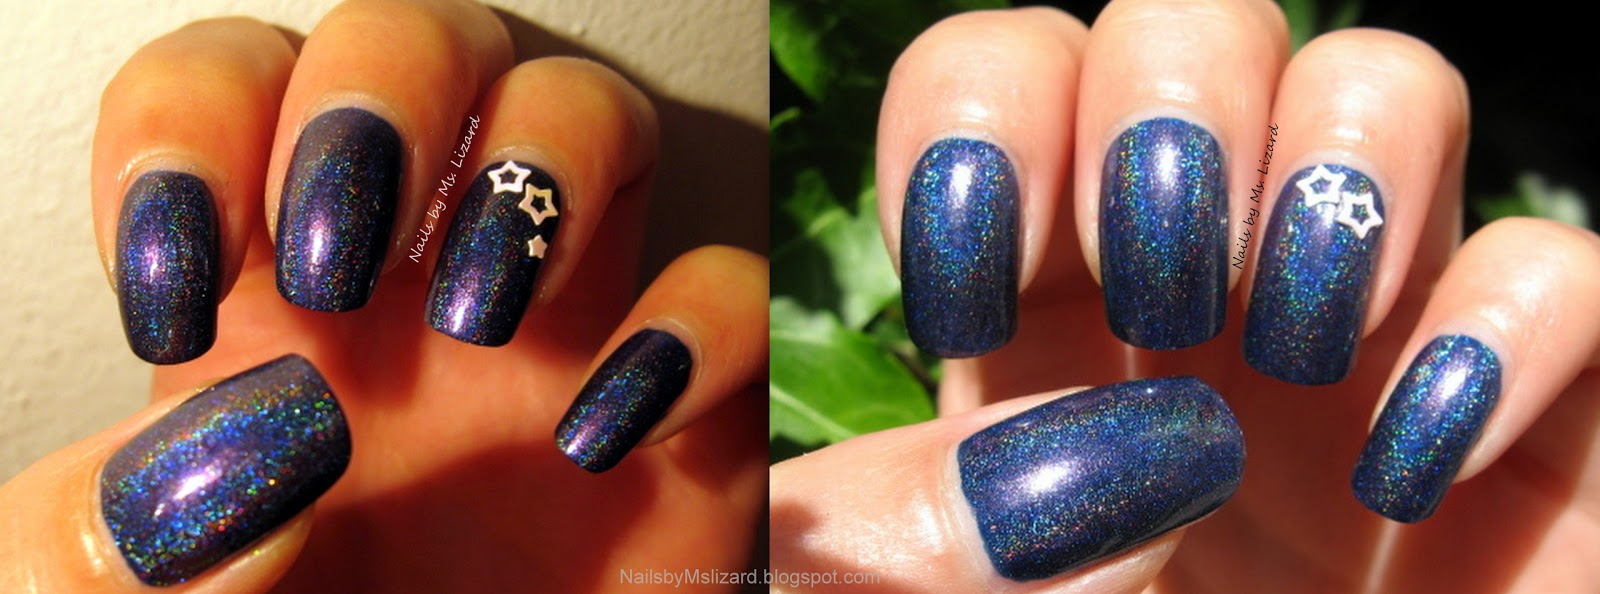 Nails by Ms. Lizard: Navy Holo Franken recipe